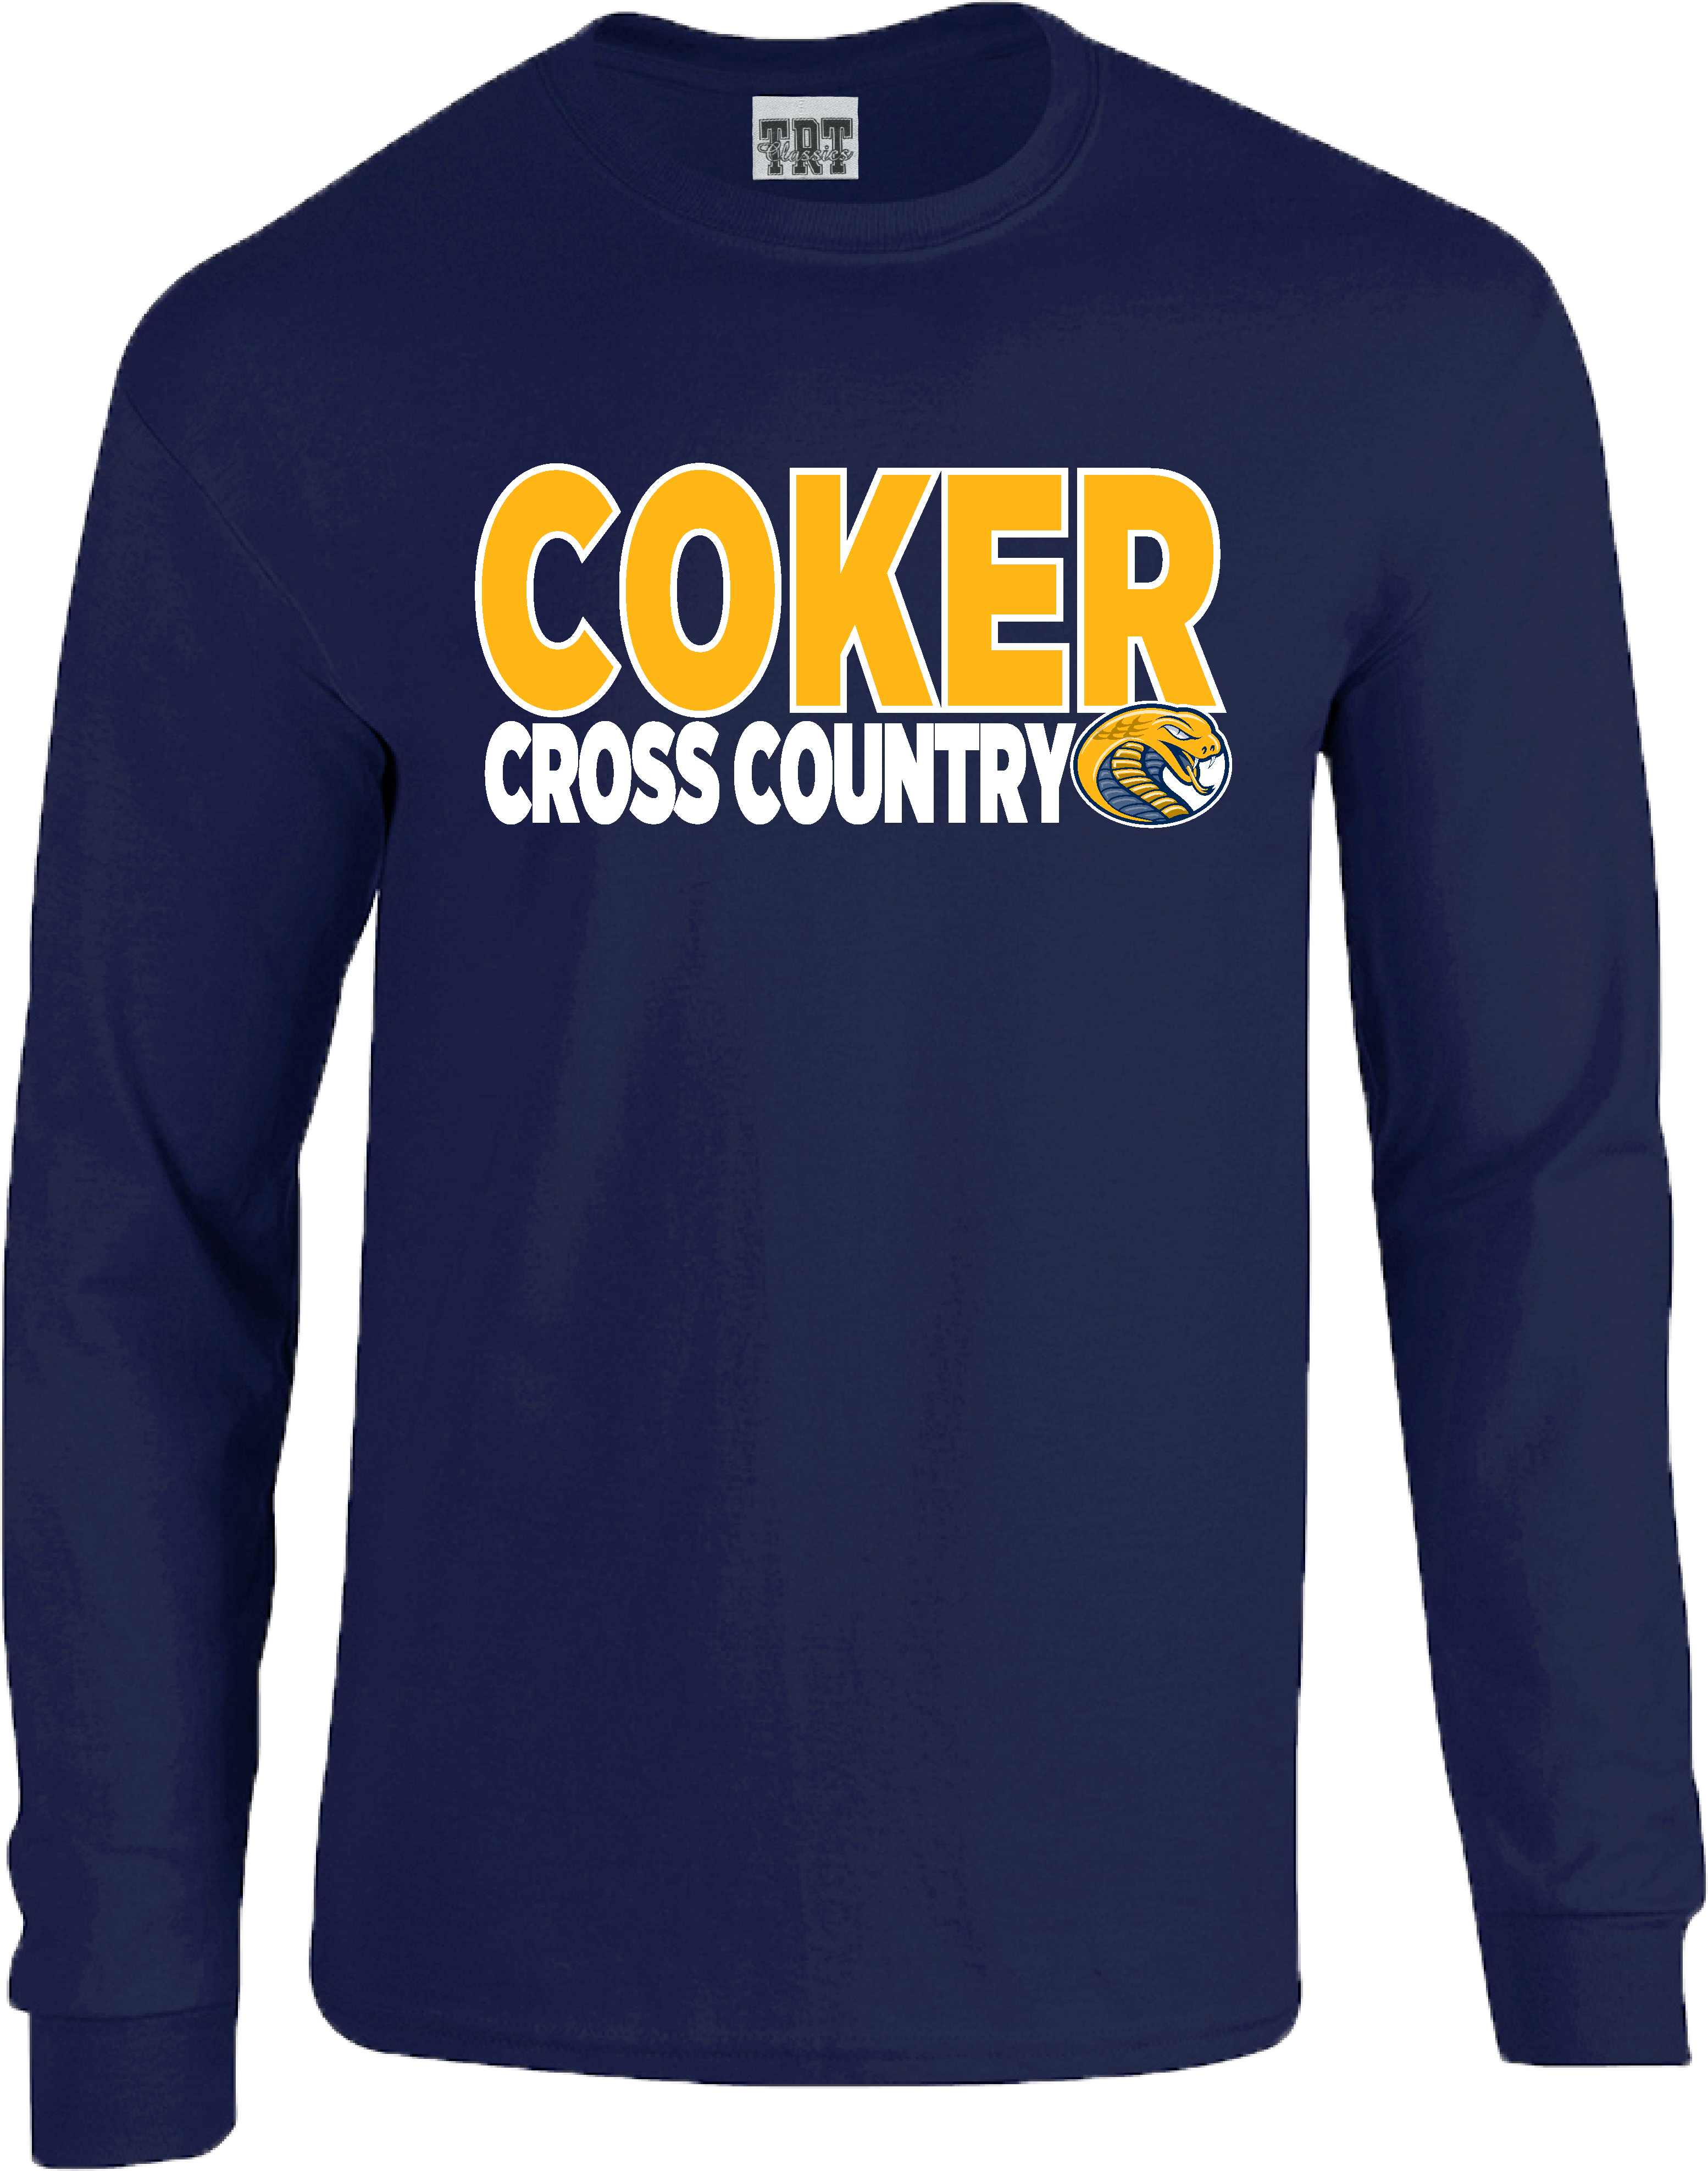 Cover Image For Clearance Shirt Sport Cross Country CROSS COUNTRY LONG SLEEV